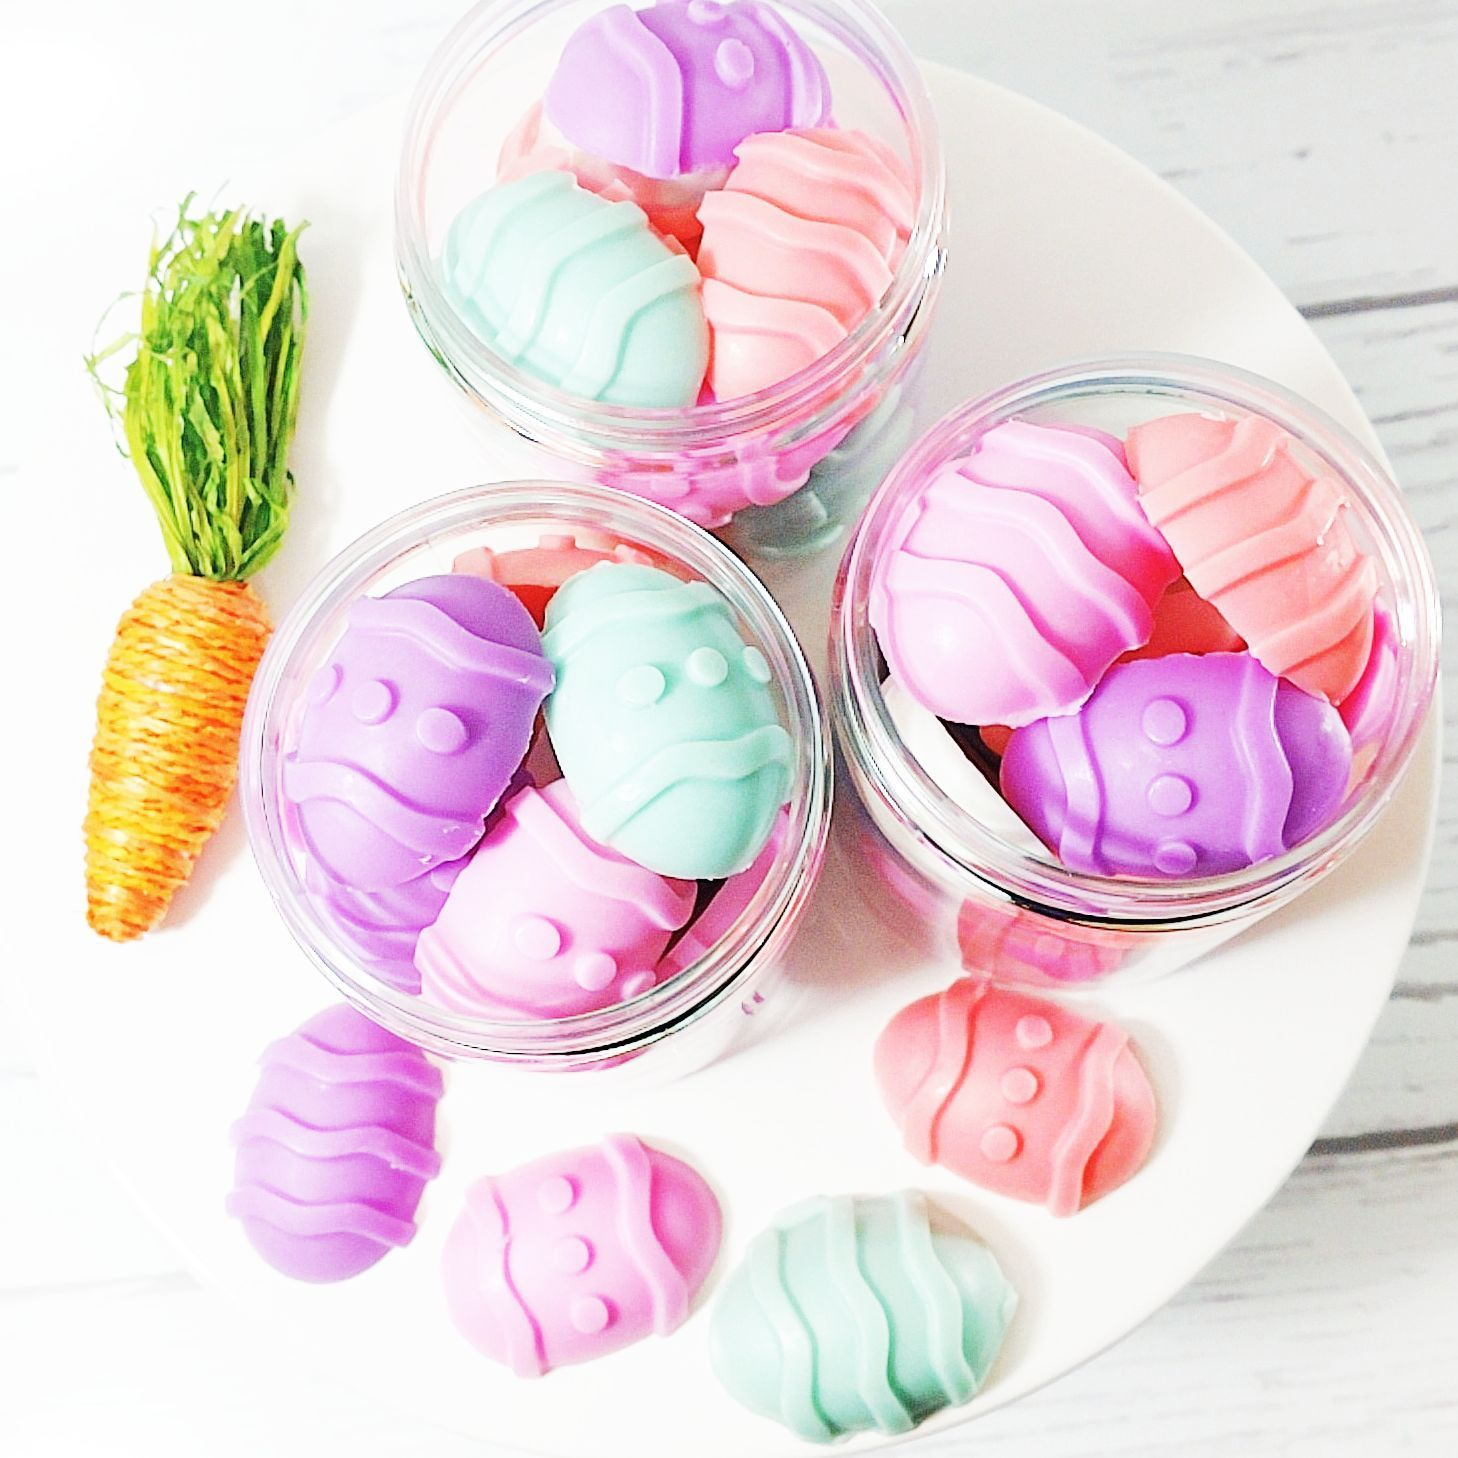 Easter egg soaps easter support small business and products adorable mini glycerin easter egg soaps in the scent of tulips brand new to our negle Image collections